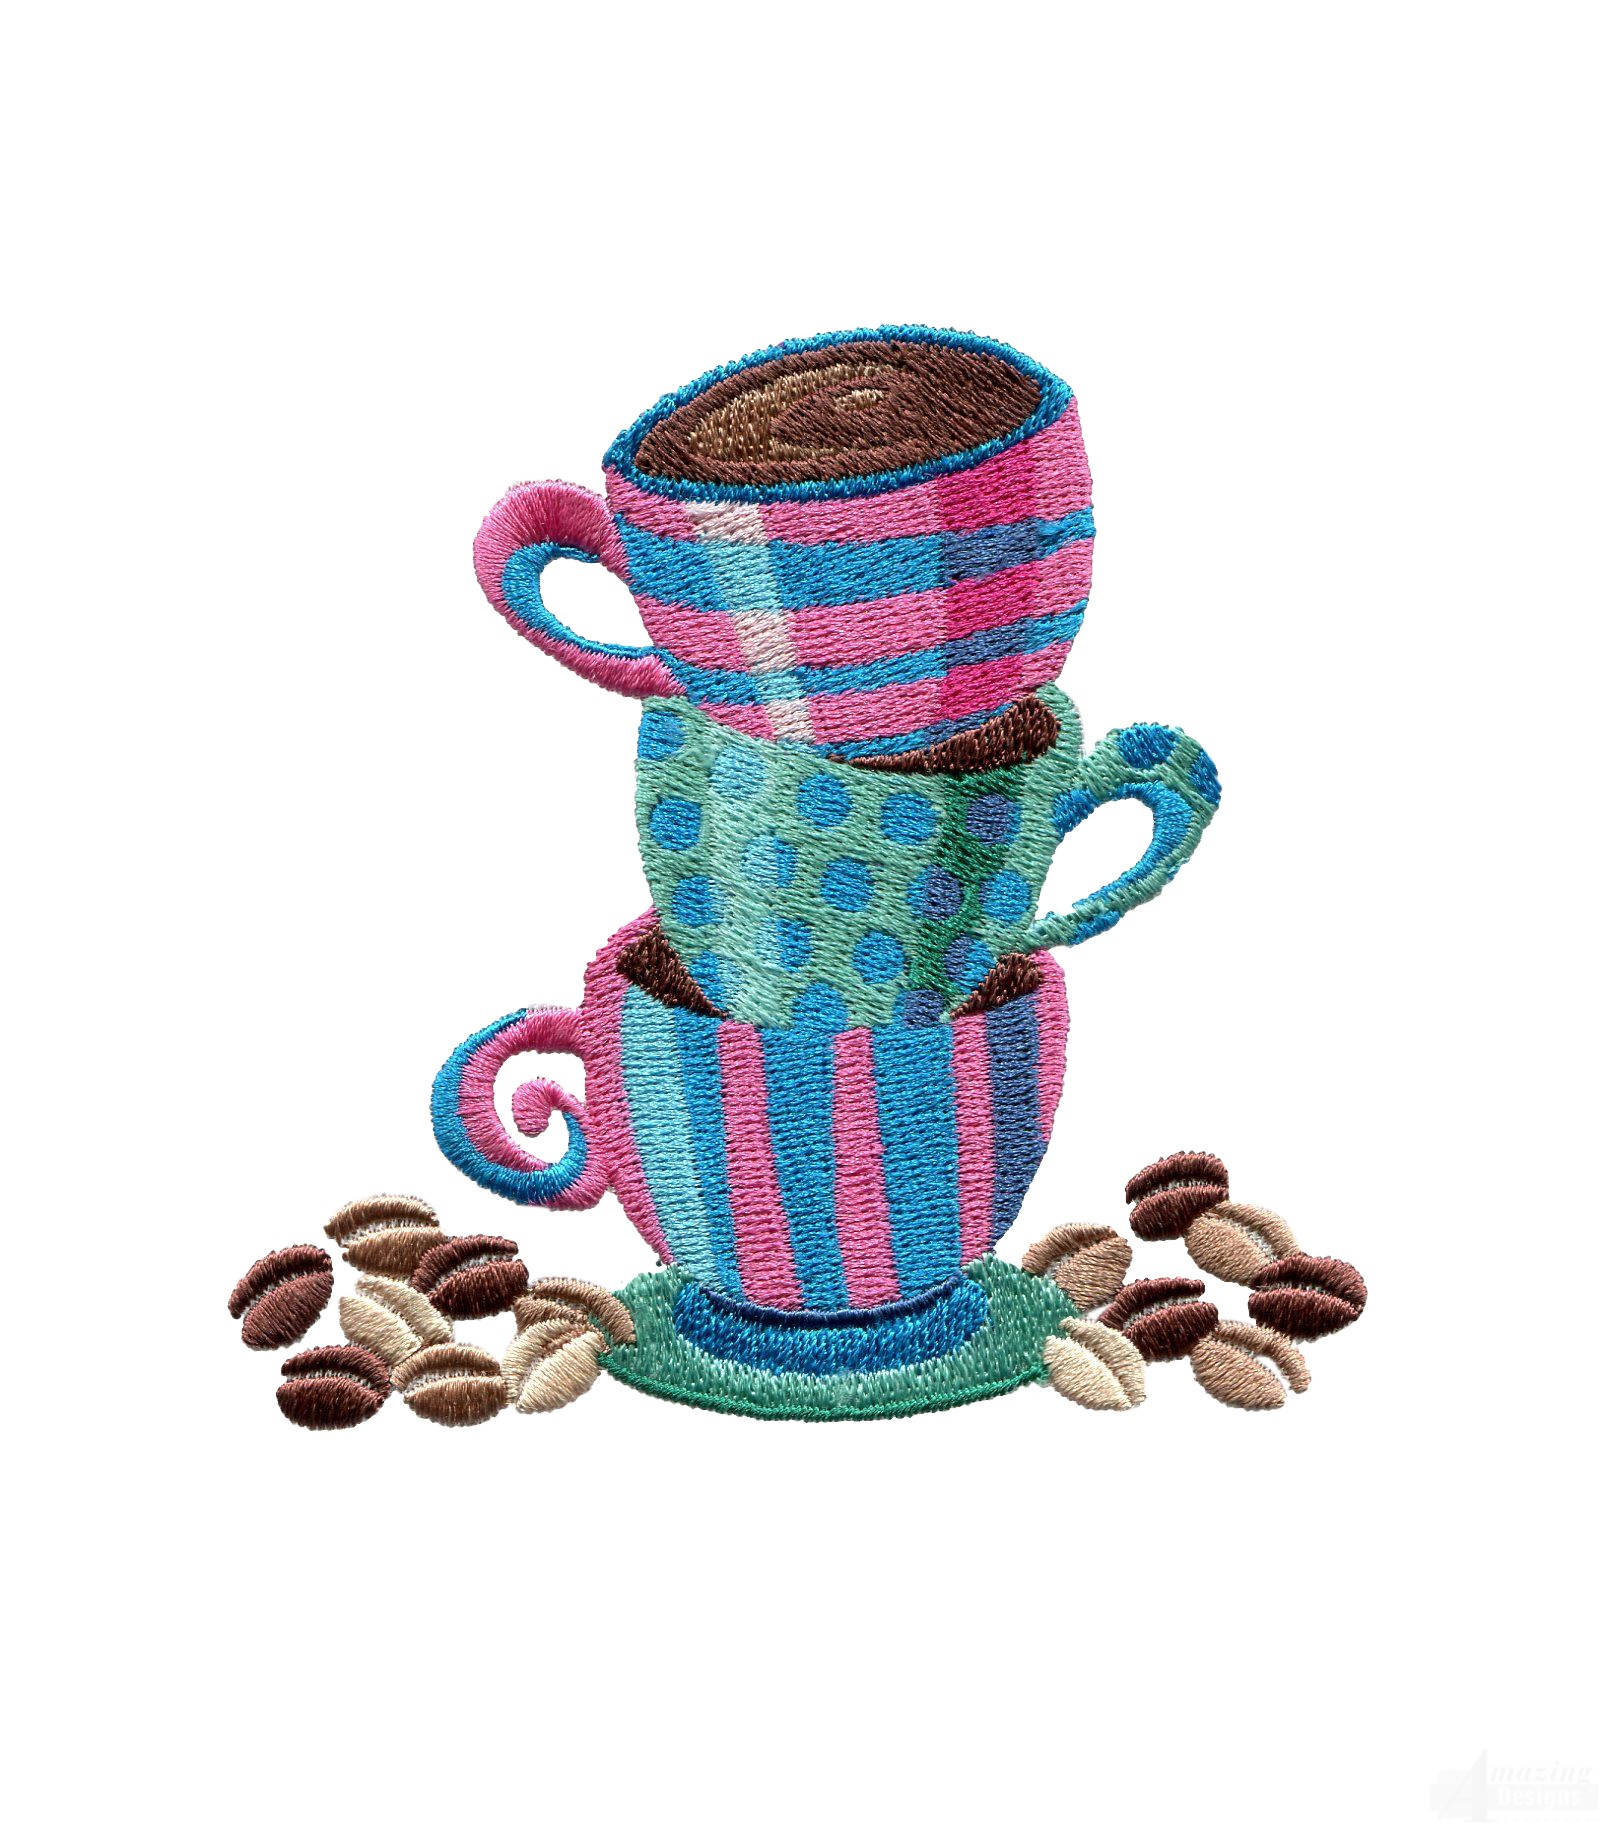 Amazing Stacked Coffee Cups Embroidery Design Coffee Mugs Design Templates Takeaway Coffee Cups Design furniture Coffee Cups Design